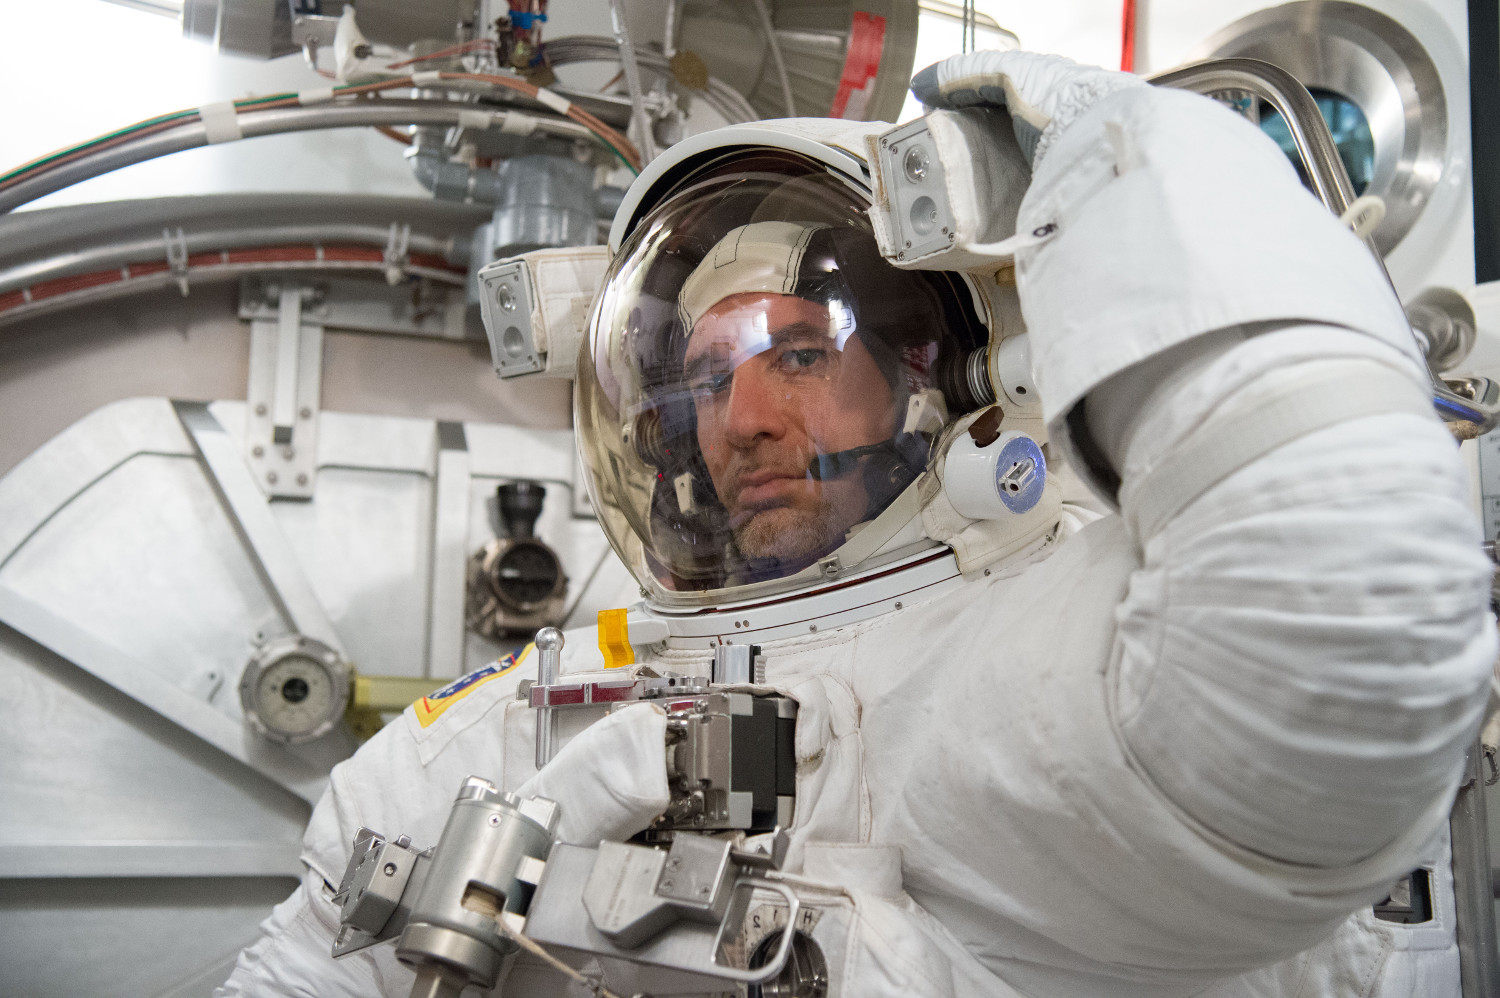 L'astronauta Luca Parmitano al Neutral Buoyancy Laboratory della NASA a Houston. Fonte: NASA